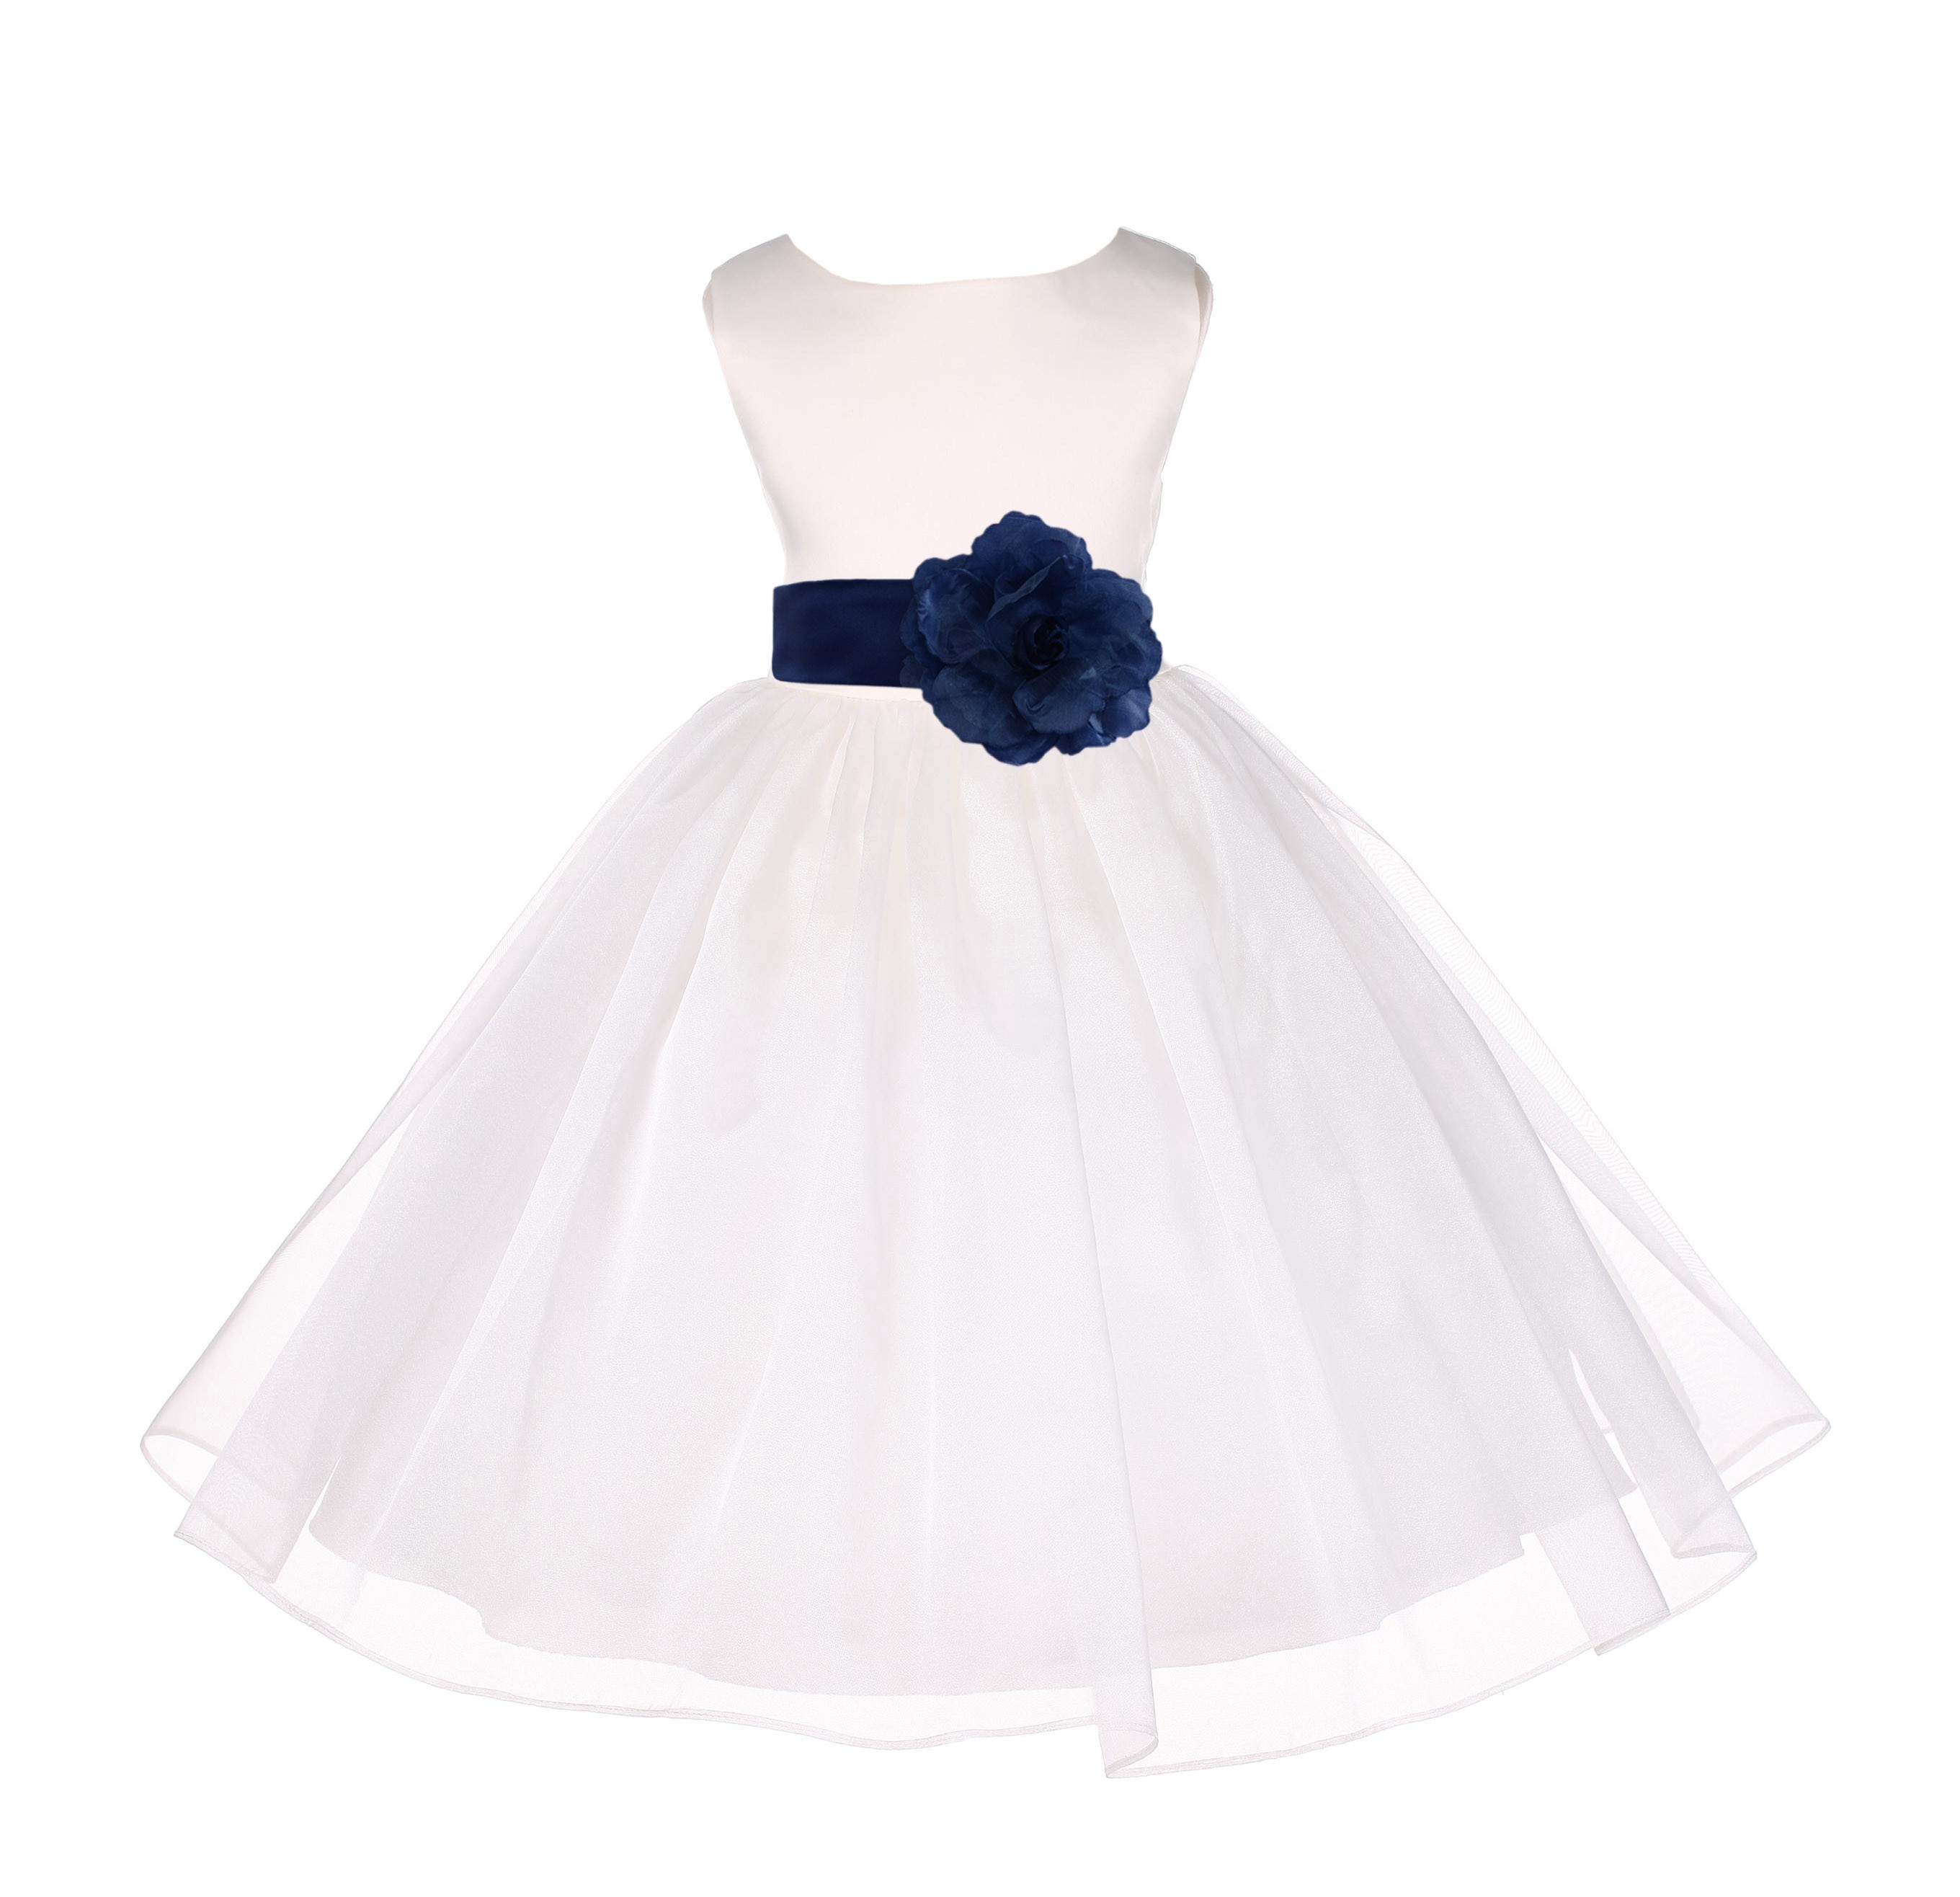 809bb1cd7 Ivory Navy Satin Bodice Organza Skirt Flower Girl Dress 841S - Ivory ...